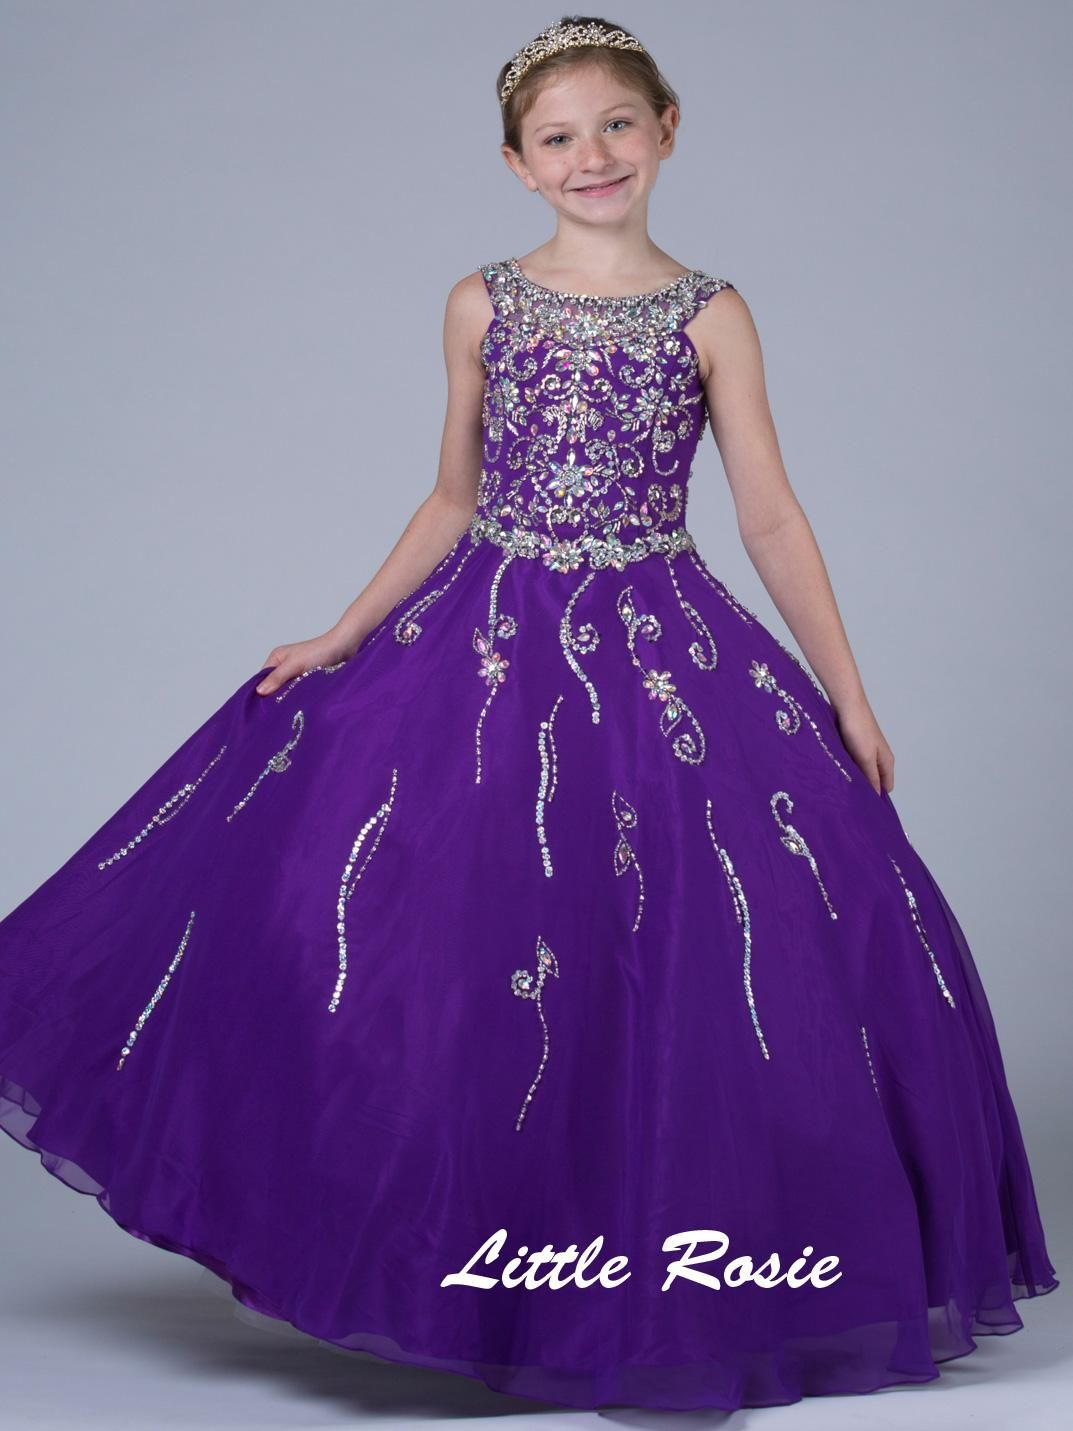 Cheap light blue ball gown girls pageant dresses 2017 wonderful cheap light blue ball gown girls pageant dresses 2017 wonderful ruffles tulle crystals wasit long girls pageant dress cheap flower girl dresses as low as izmirmasajfo Images